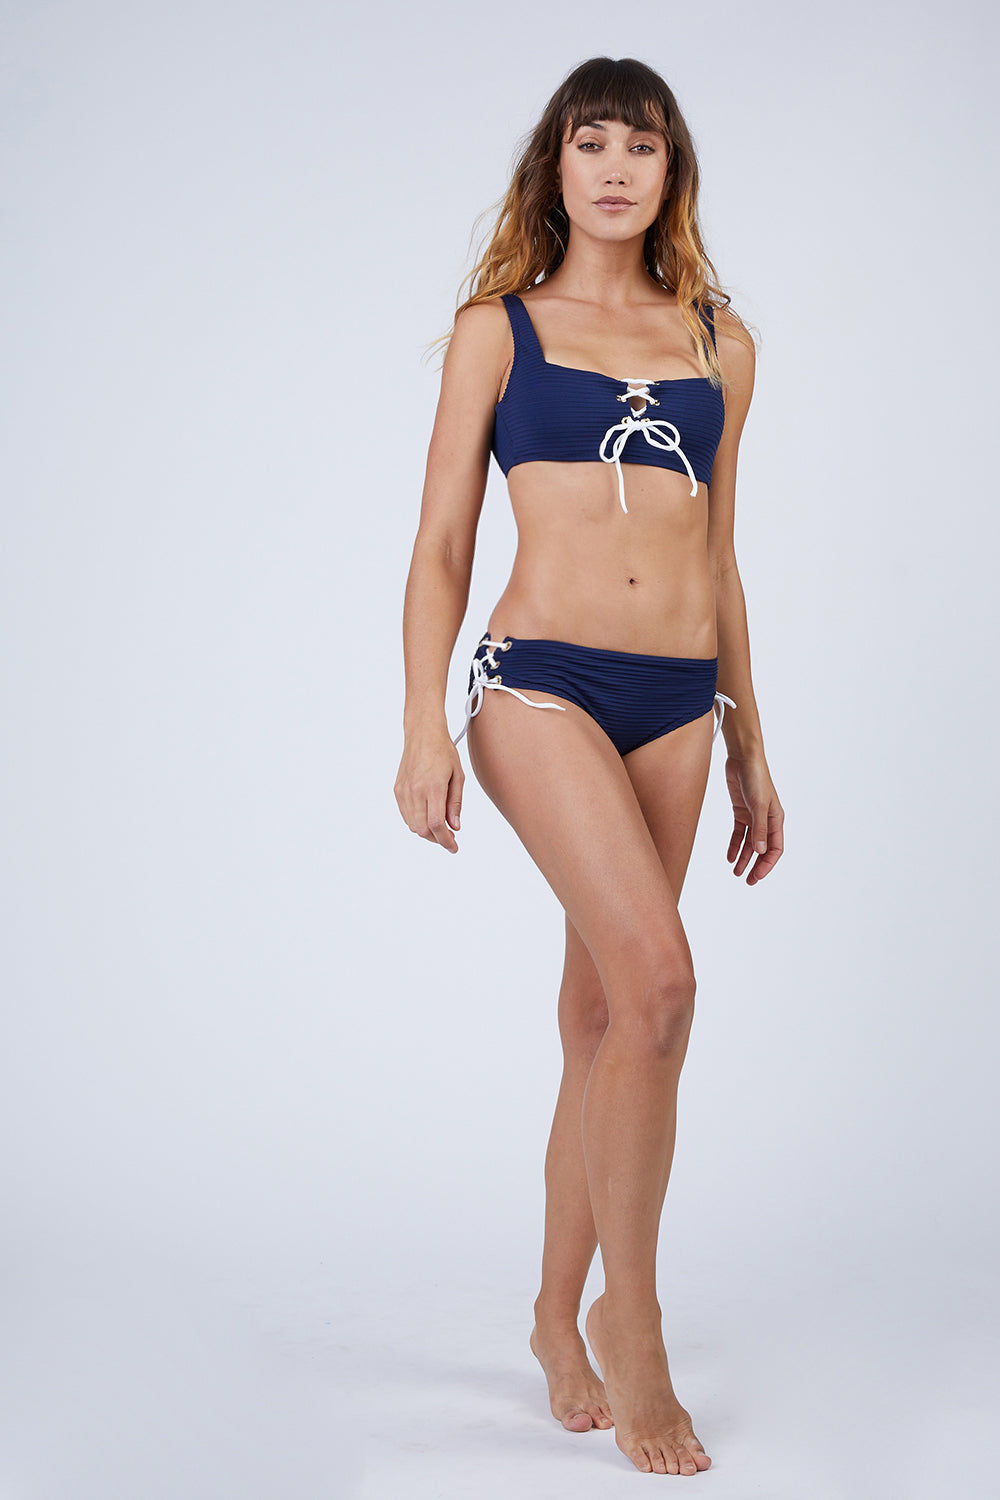 HEIDI KLEIN Tie Side High Waisted Bikini Bottom - Navy Bikini Bottom | Navy| Heidi Klein Tie Side High Waisted Bikini Bottom - Navy. Features:  This style is cut to be High Rise and Mid Coverage. The waist and legs are elasticated for a secure, comfortable fit. Fully lined in soft lining for ultimate comfort. This high waisted style is cut with split side seams, fastened with decorative lacing. Front View